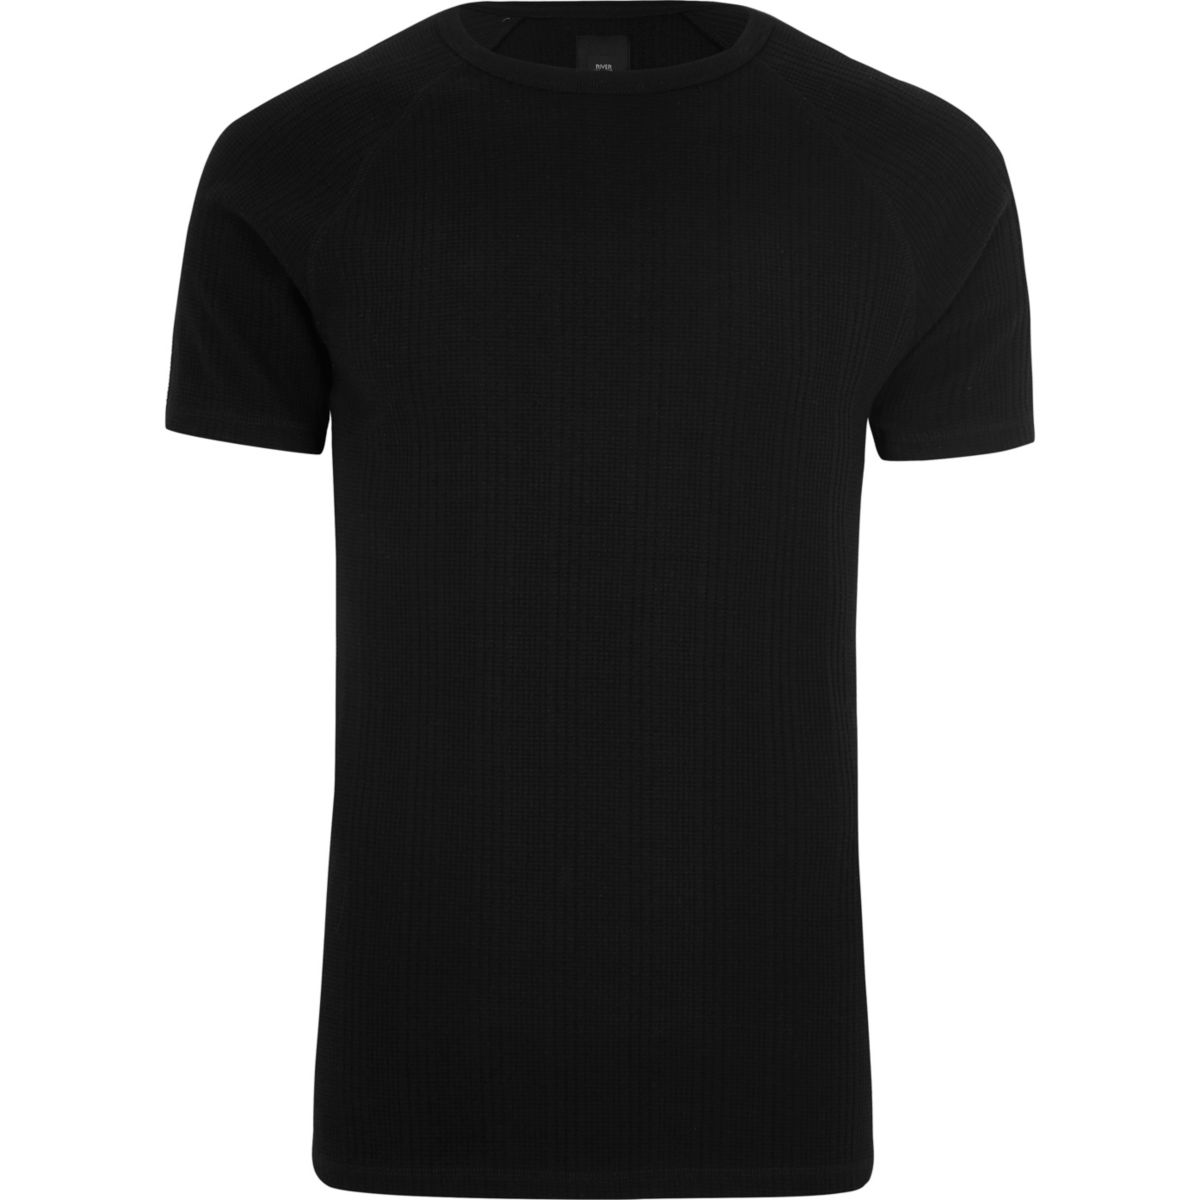 Black jacquard short sleeve slim fit T-shirt